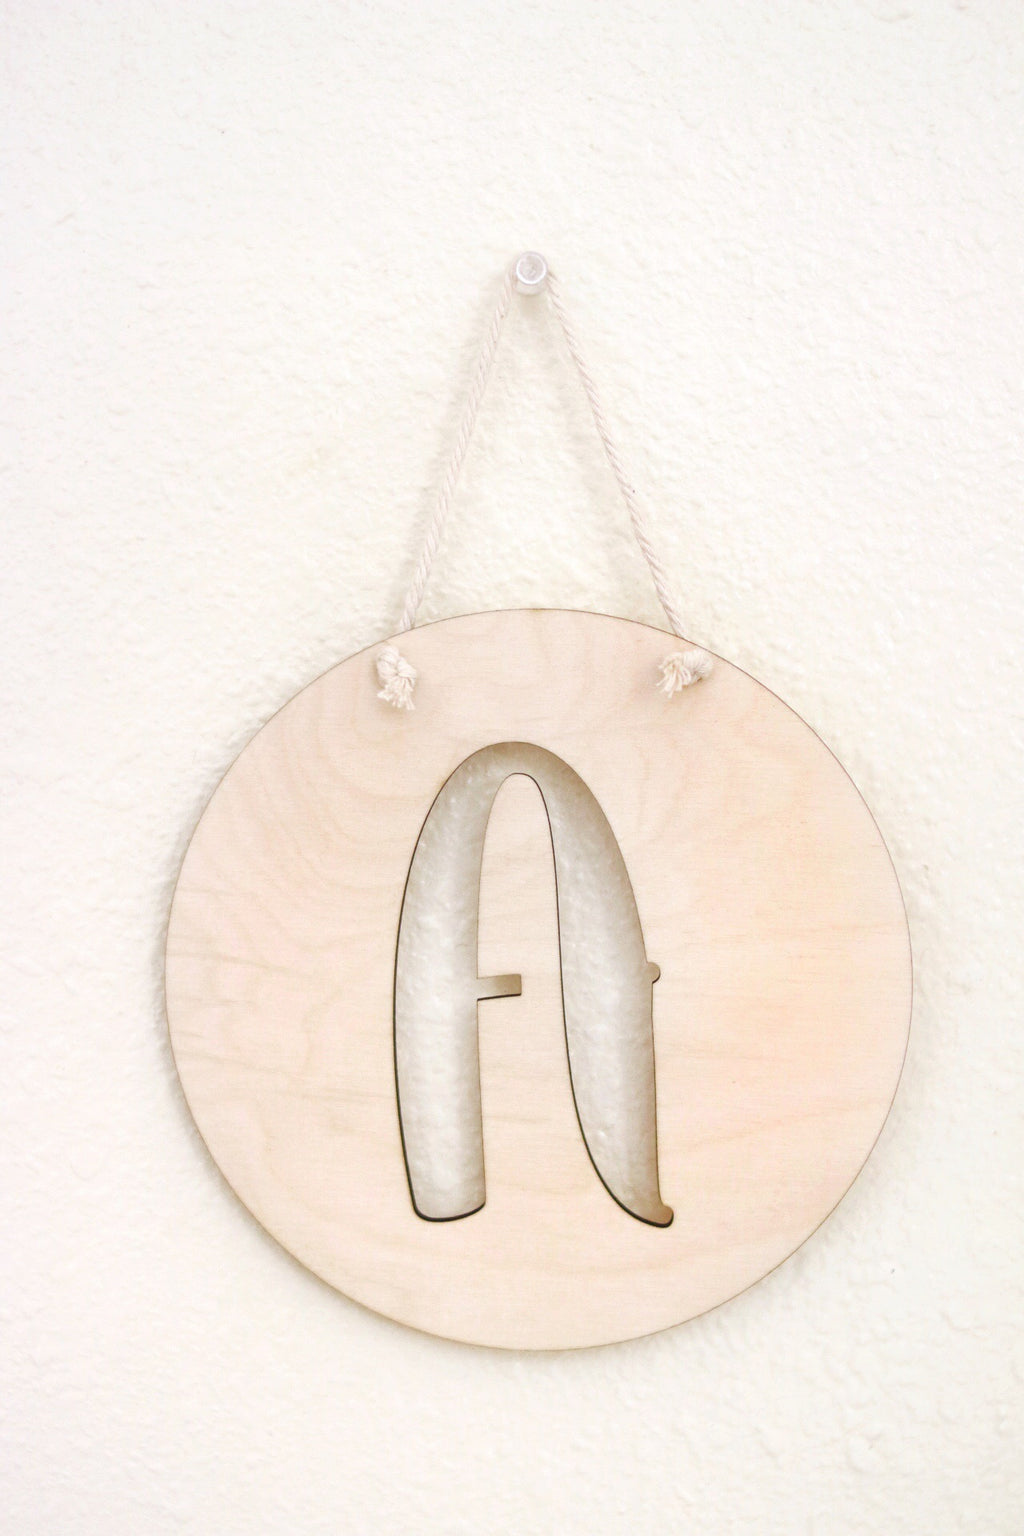 Wooden Letter Plaque